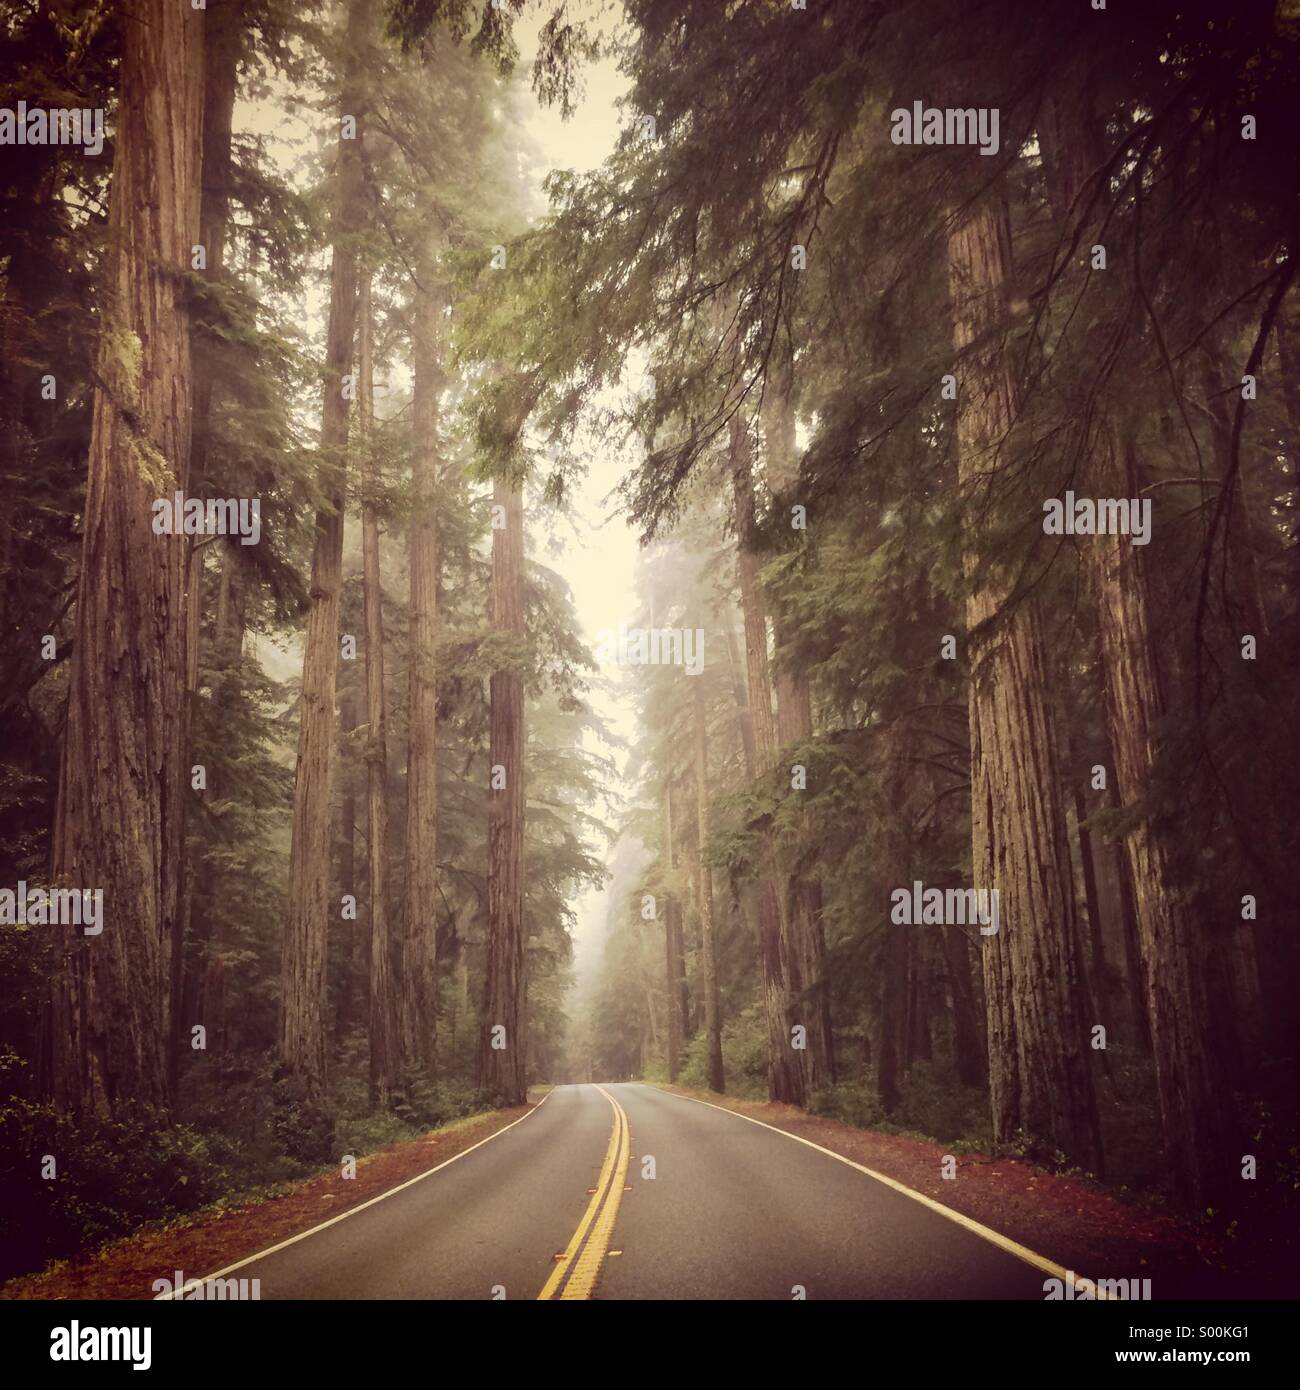 Driving through the Redwoods. - Stock Image